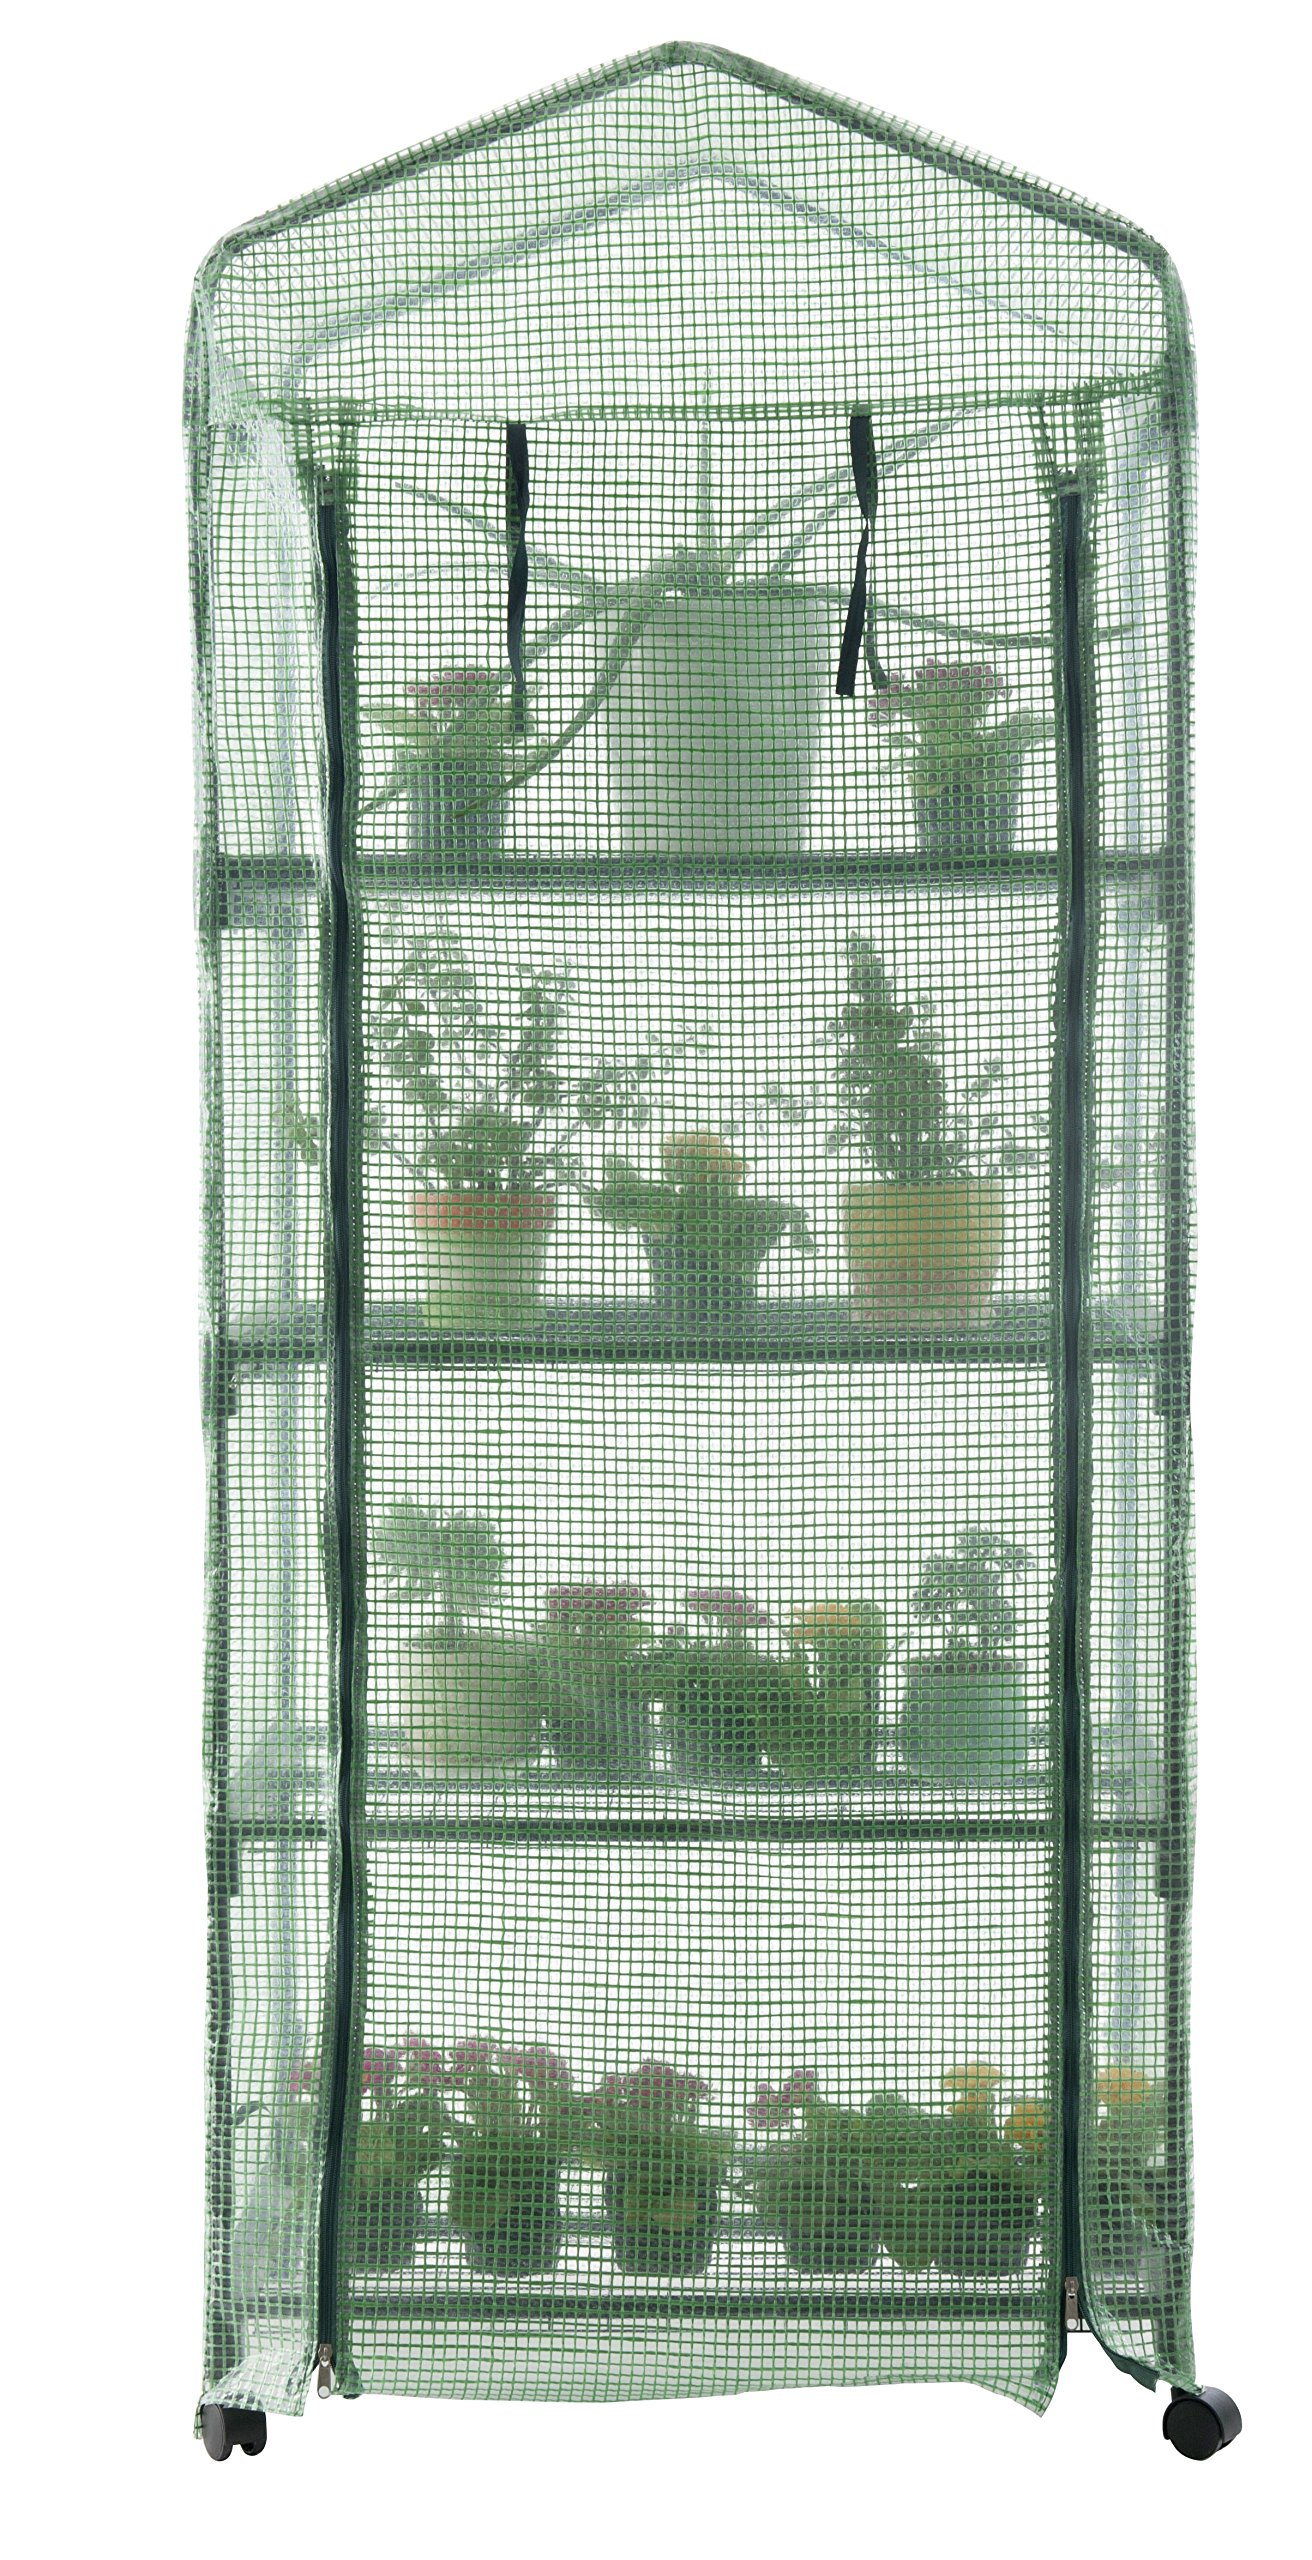 GOJOOASIS 4 Tier Mini Portable Garden Greenhouse on Wheels Plants Shed Hot House for Indoor and Outdoor by GOJOOASIS (Image #2)